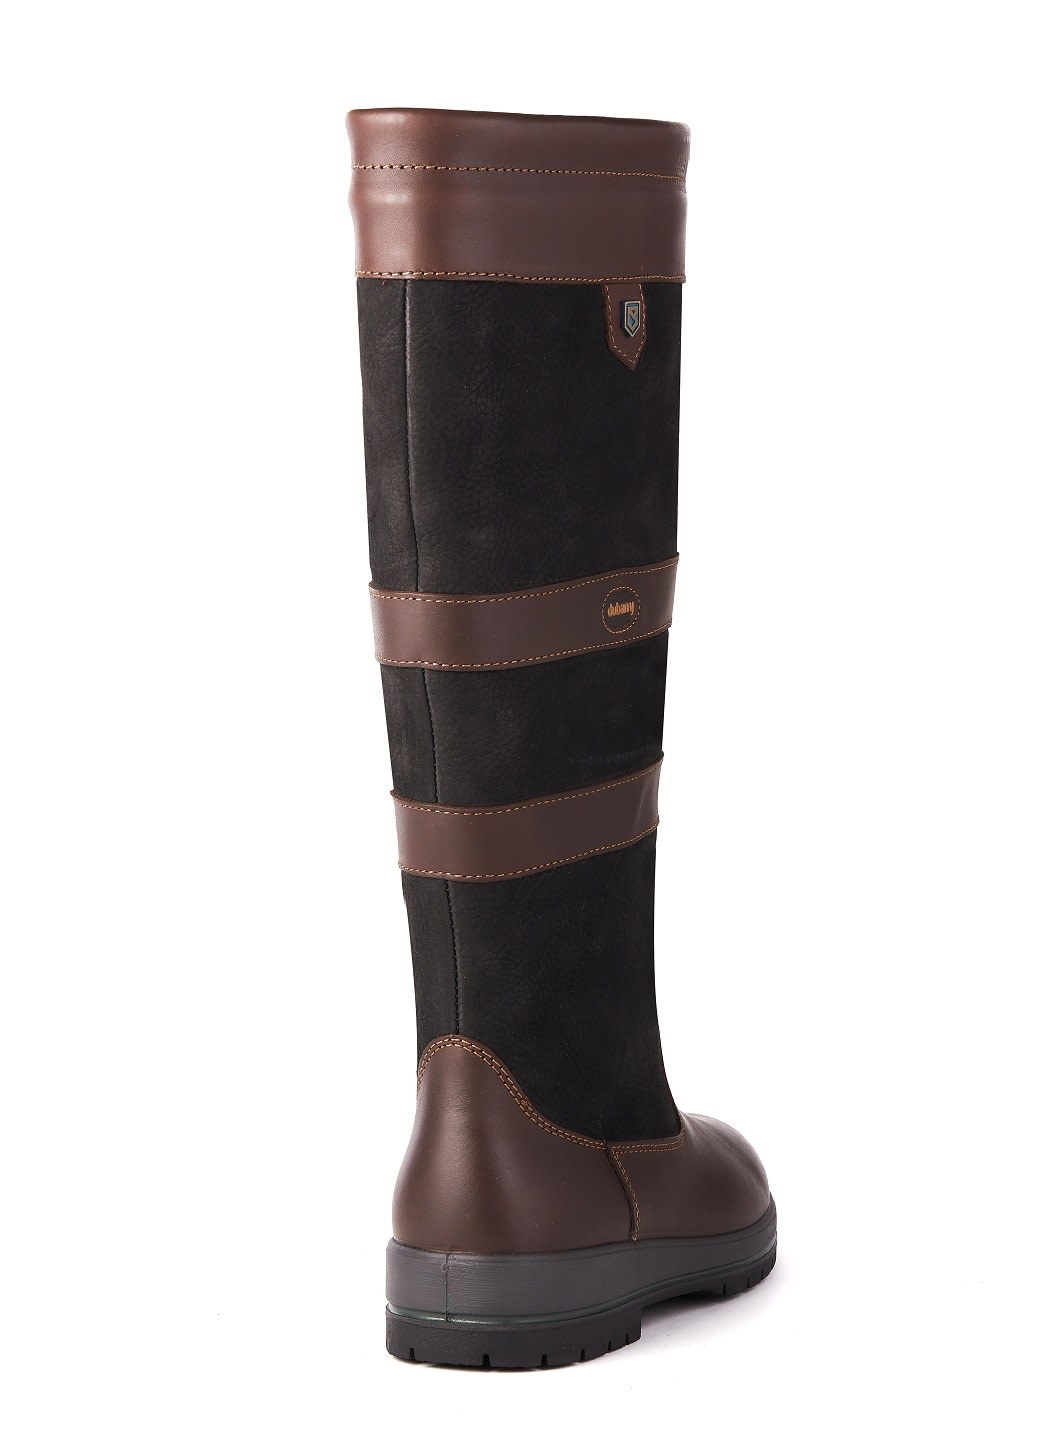 Dubarry Galway Extrafit™- Black/Brown-4